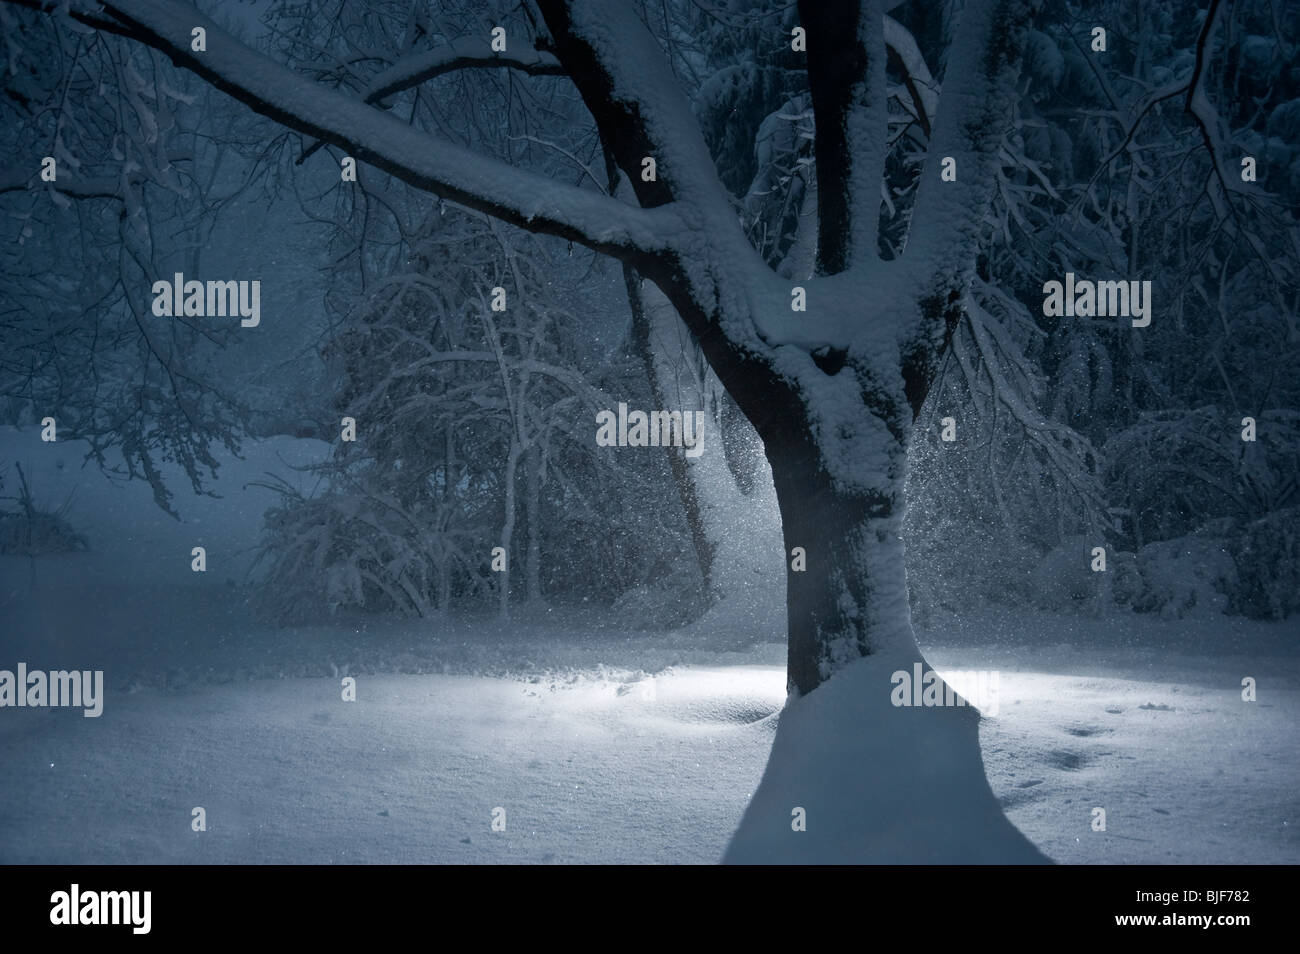 Tree In Winter Snow Storm With Snow Falling At Night, Pennsylvania, USA - Stock Image